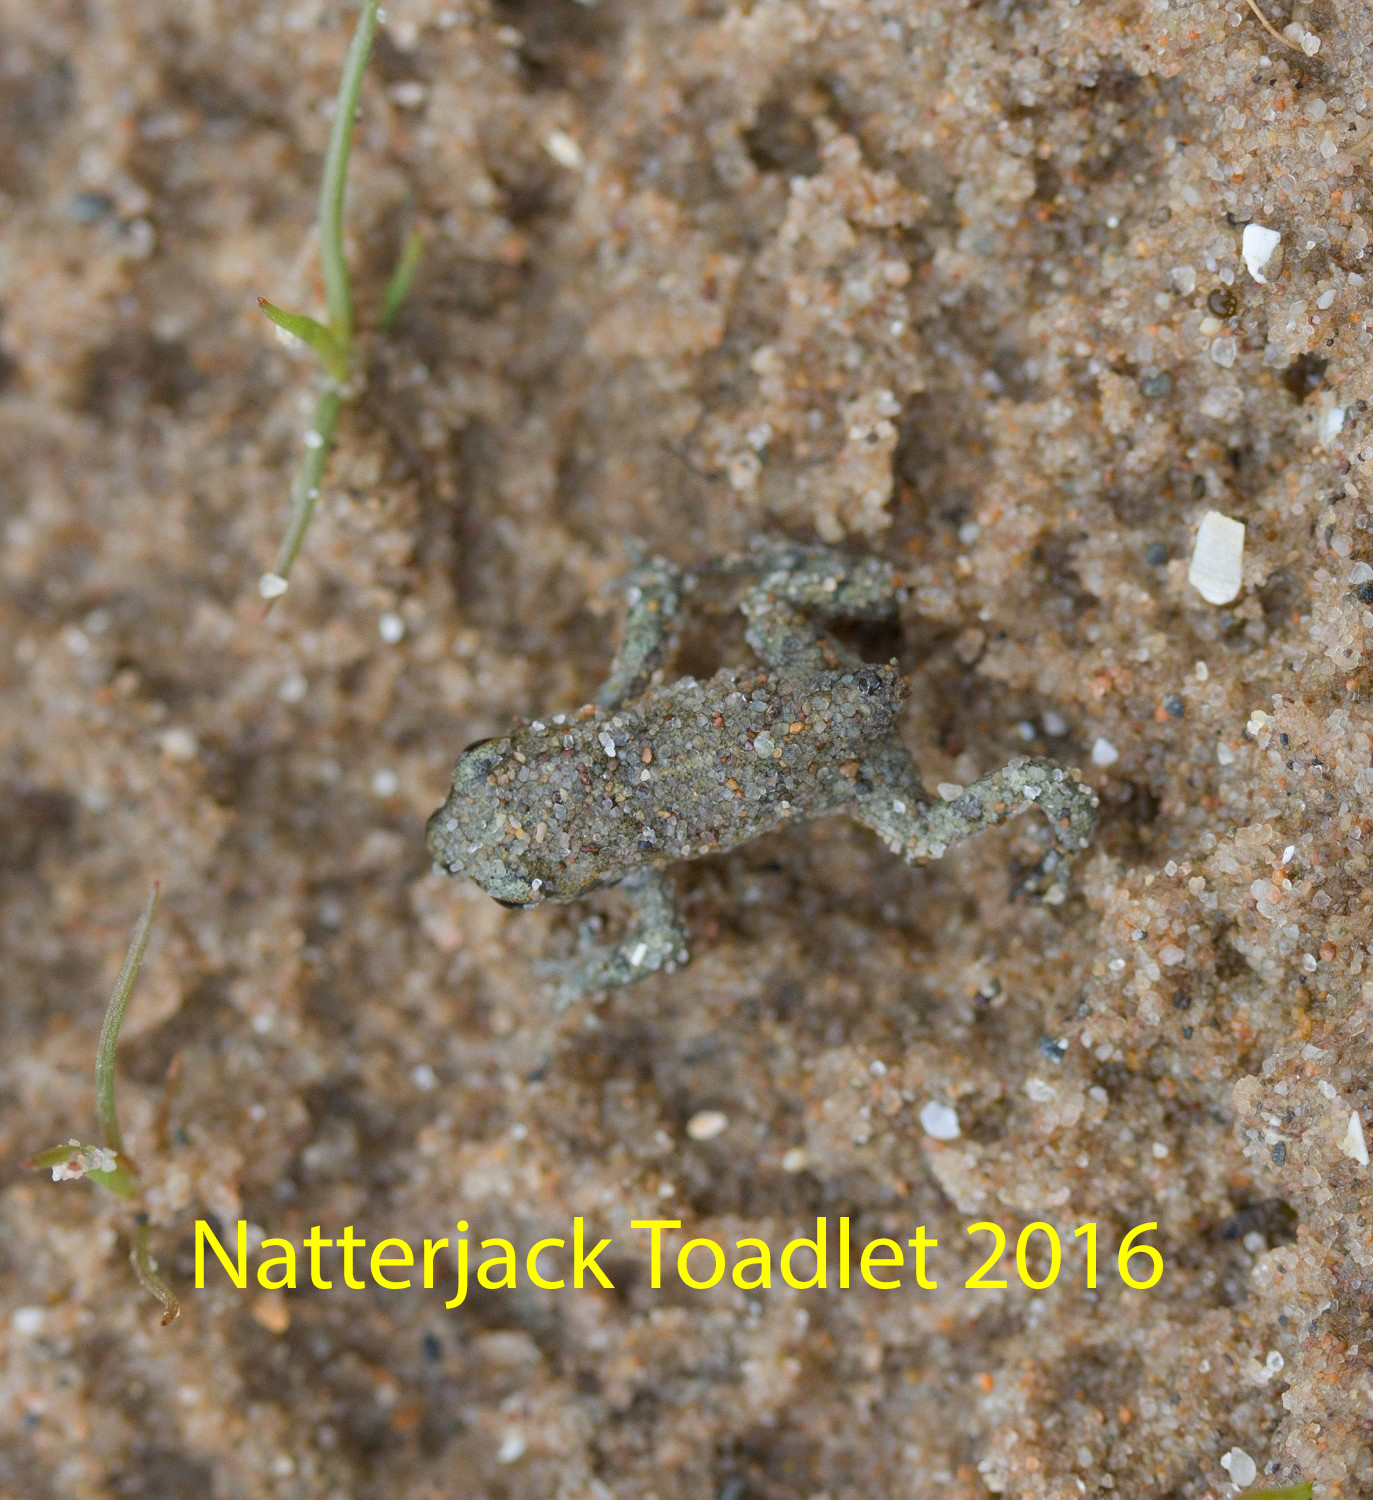 img_2312-natterjack-toadlet-1-1-4523602458079e9f03c0b39170ee01f277be2a16